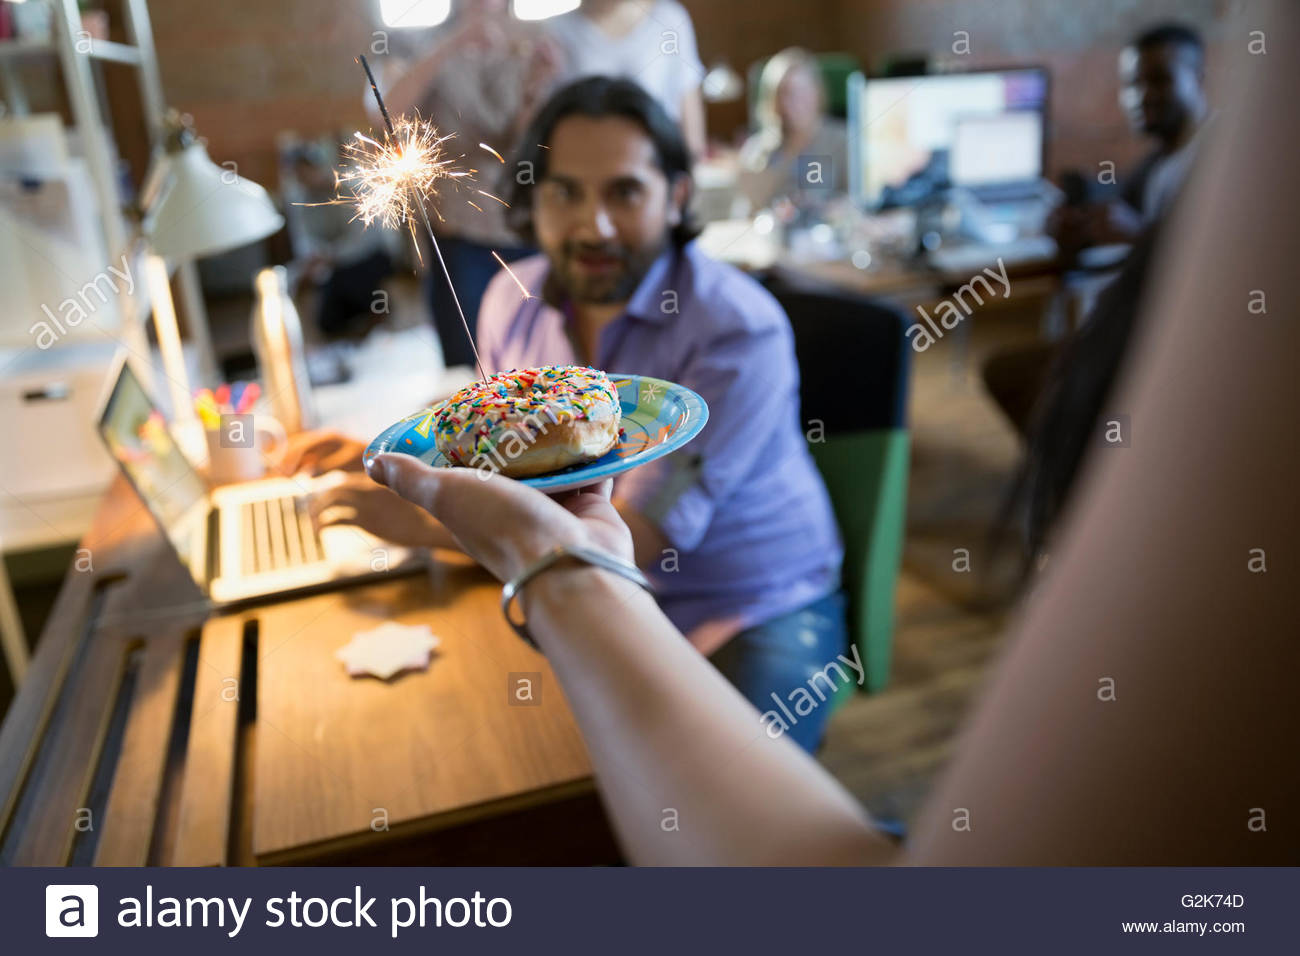 Coworker serving creative businessman birthday donut with sparkler - Stock Image